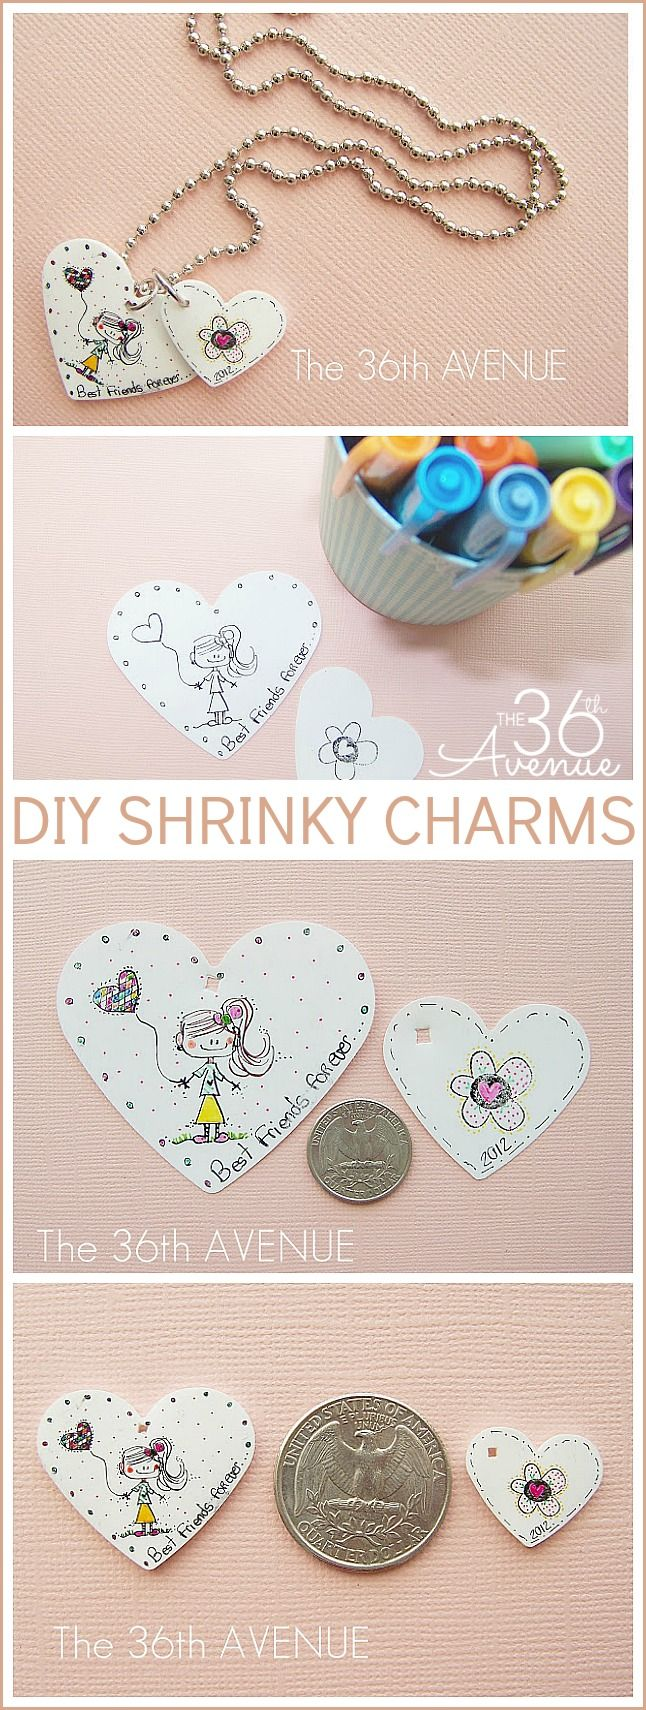 Super cute and easy DIY Shrinky Charm and Necklace Tutorial: Diy Shrinki, Shrinki Charms, Necklaces Tutorials, Gifts Ideas, Shrink Film, Friendship Necklaces, Easy Diy, Cute Diy, Film Friendship